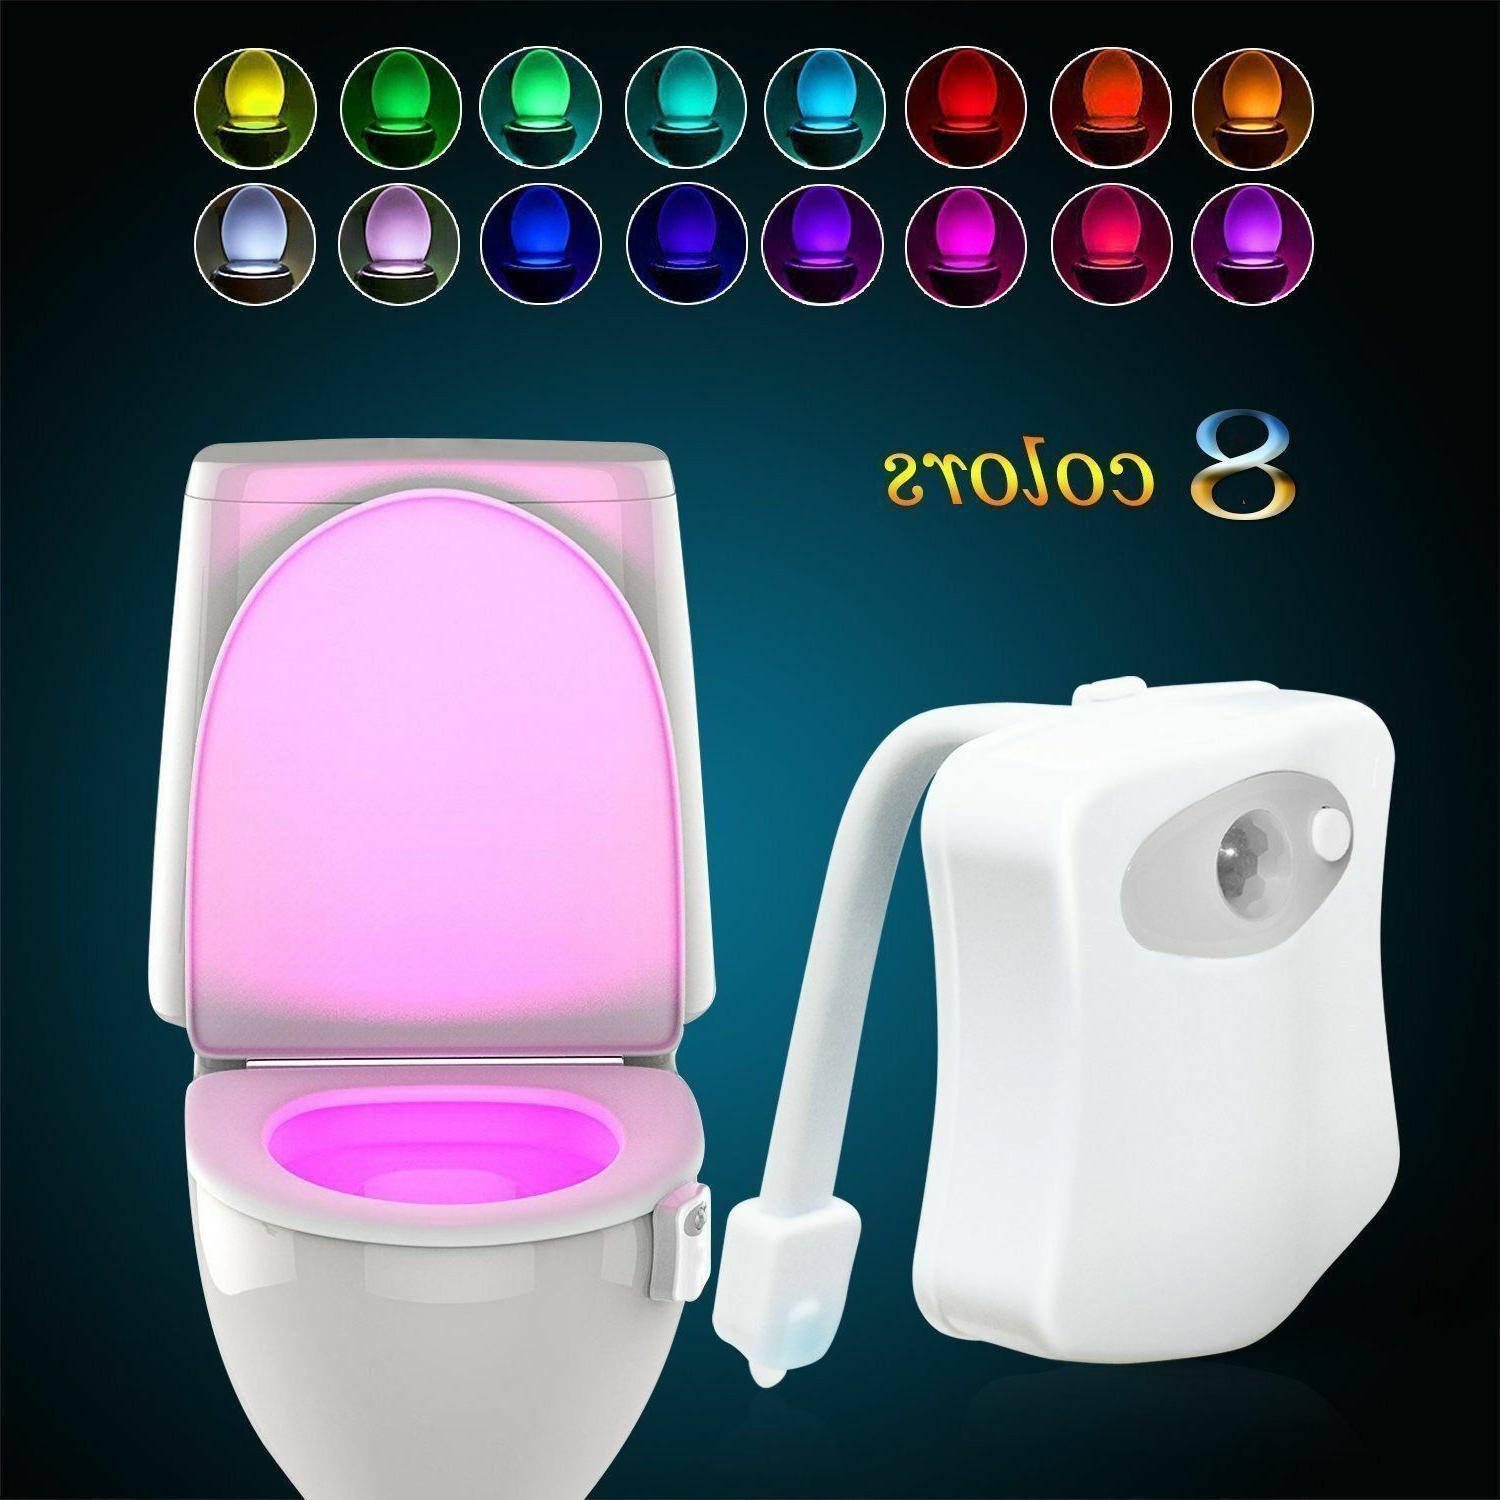 2 toilet night light motion activated 8